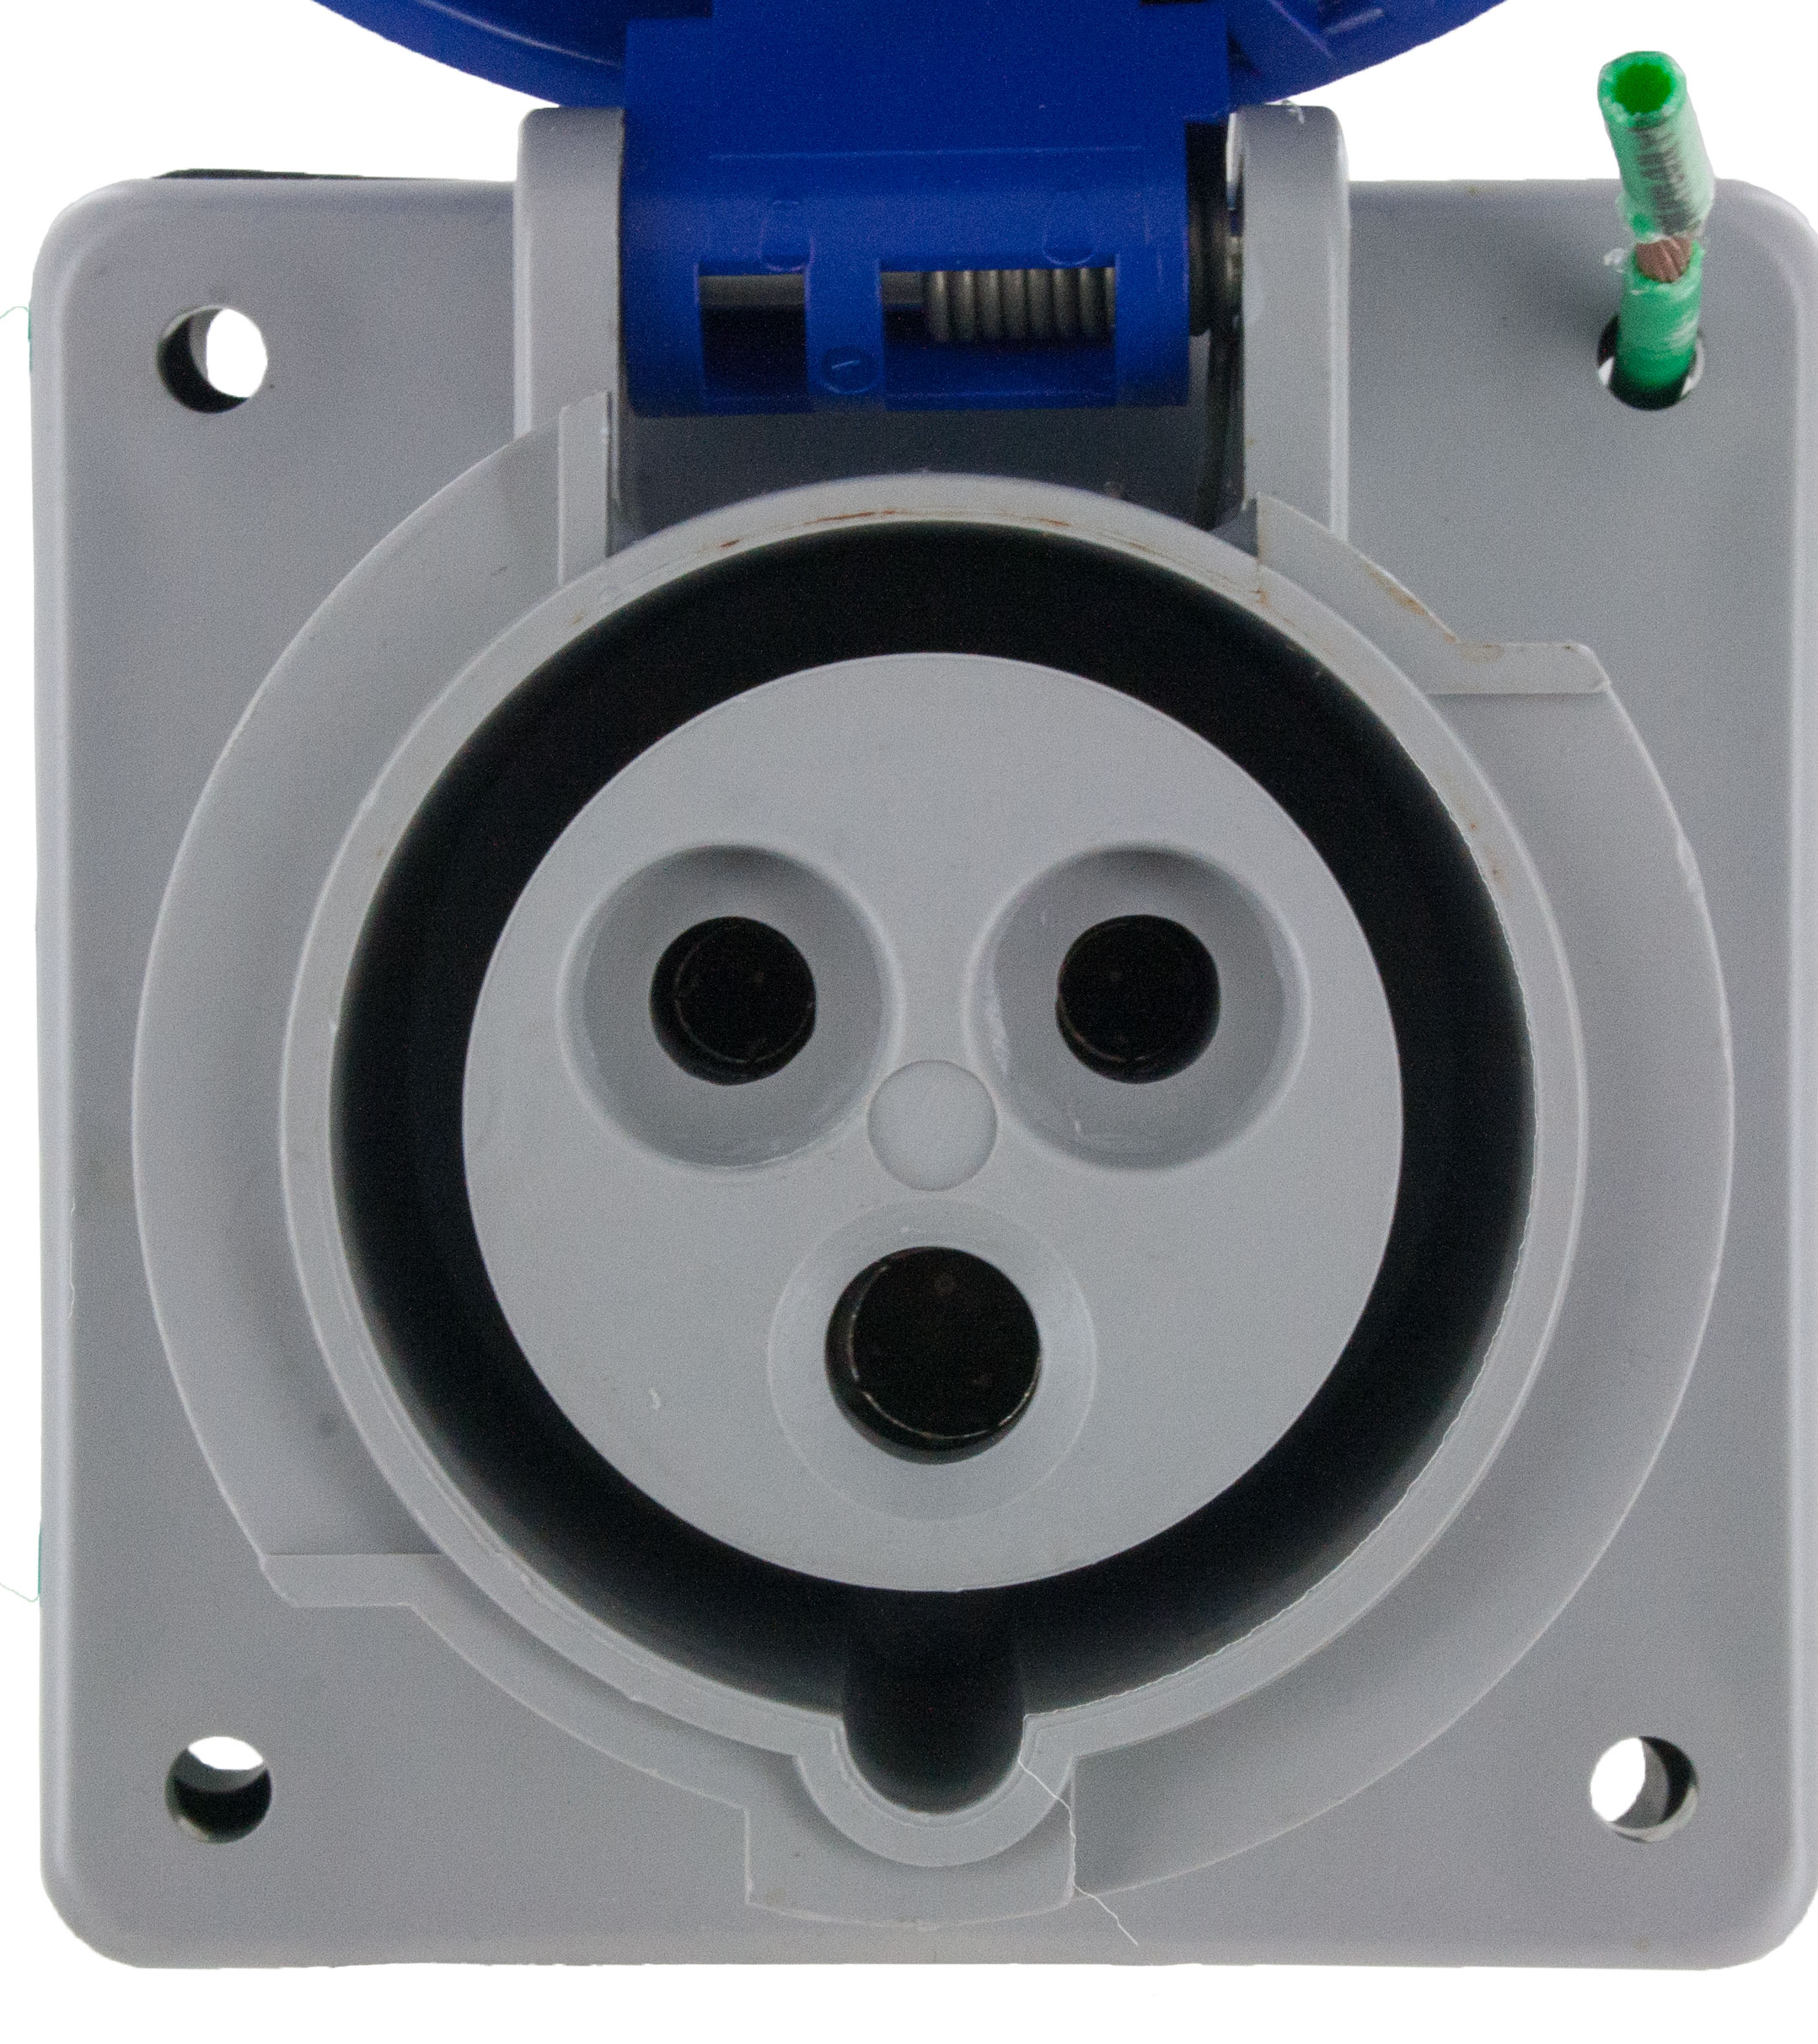 320R6W Pin And Sleeve Receptacle 20 Amp 2 Pole 3 Wire | ElecDirect